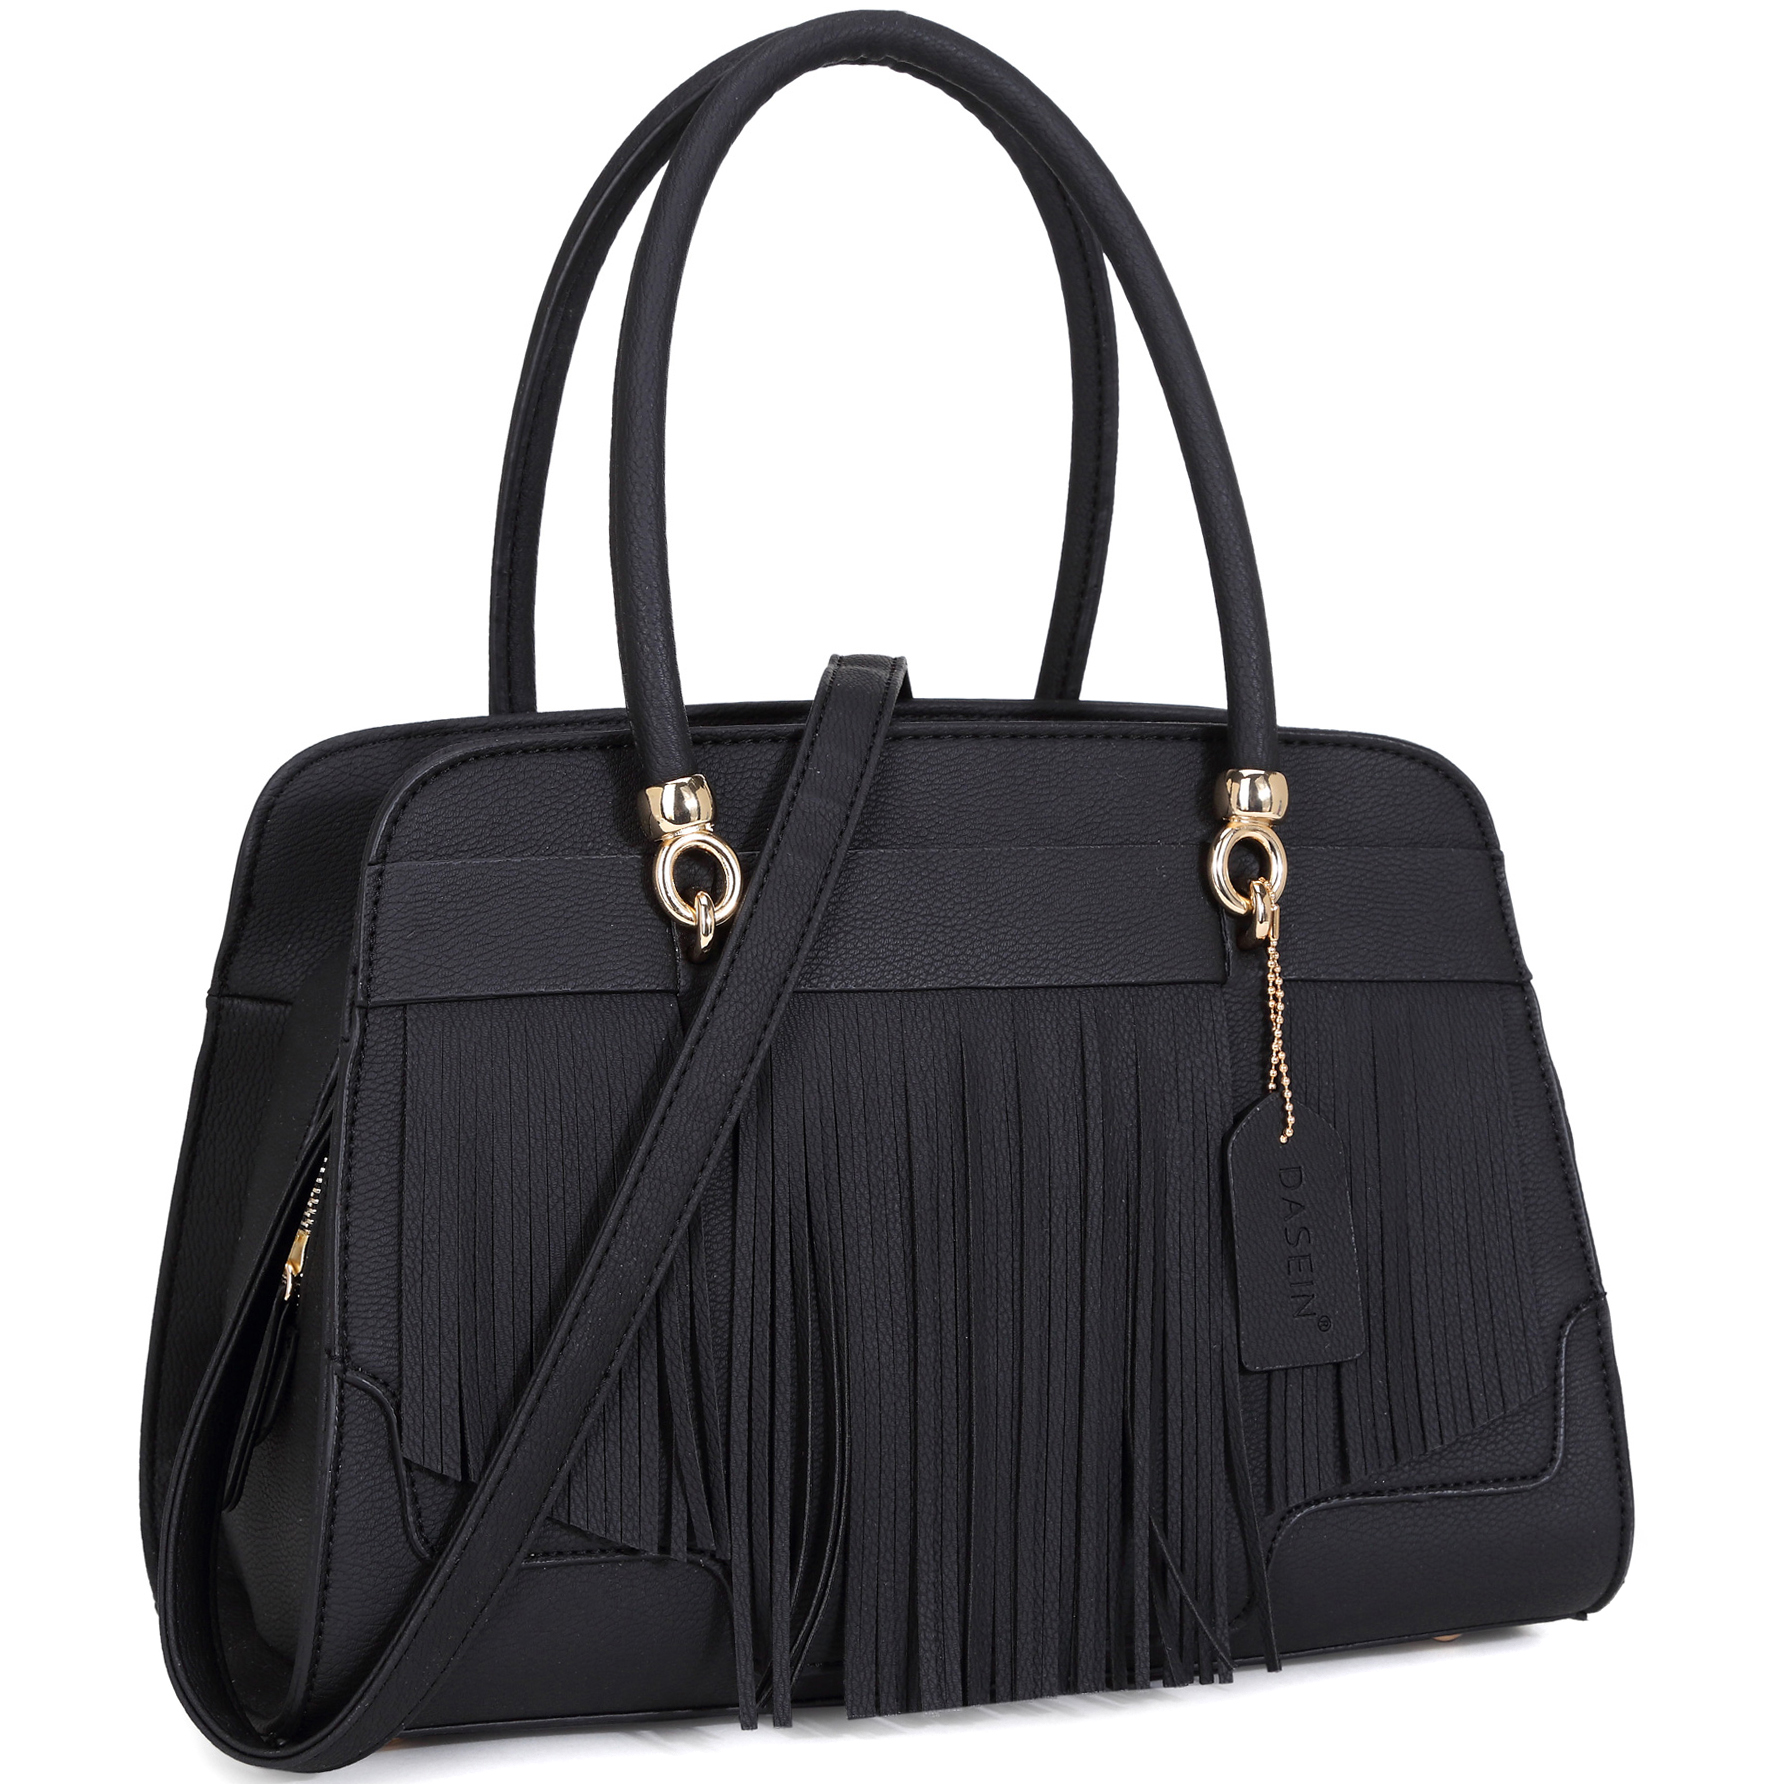 Dasein Fashion Fringe Gold-Tone Satchel